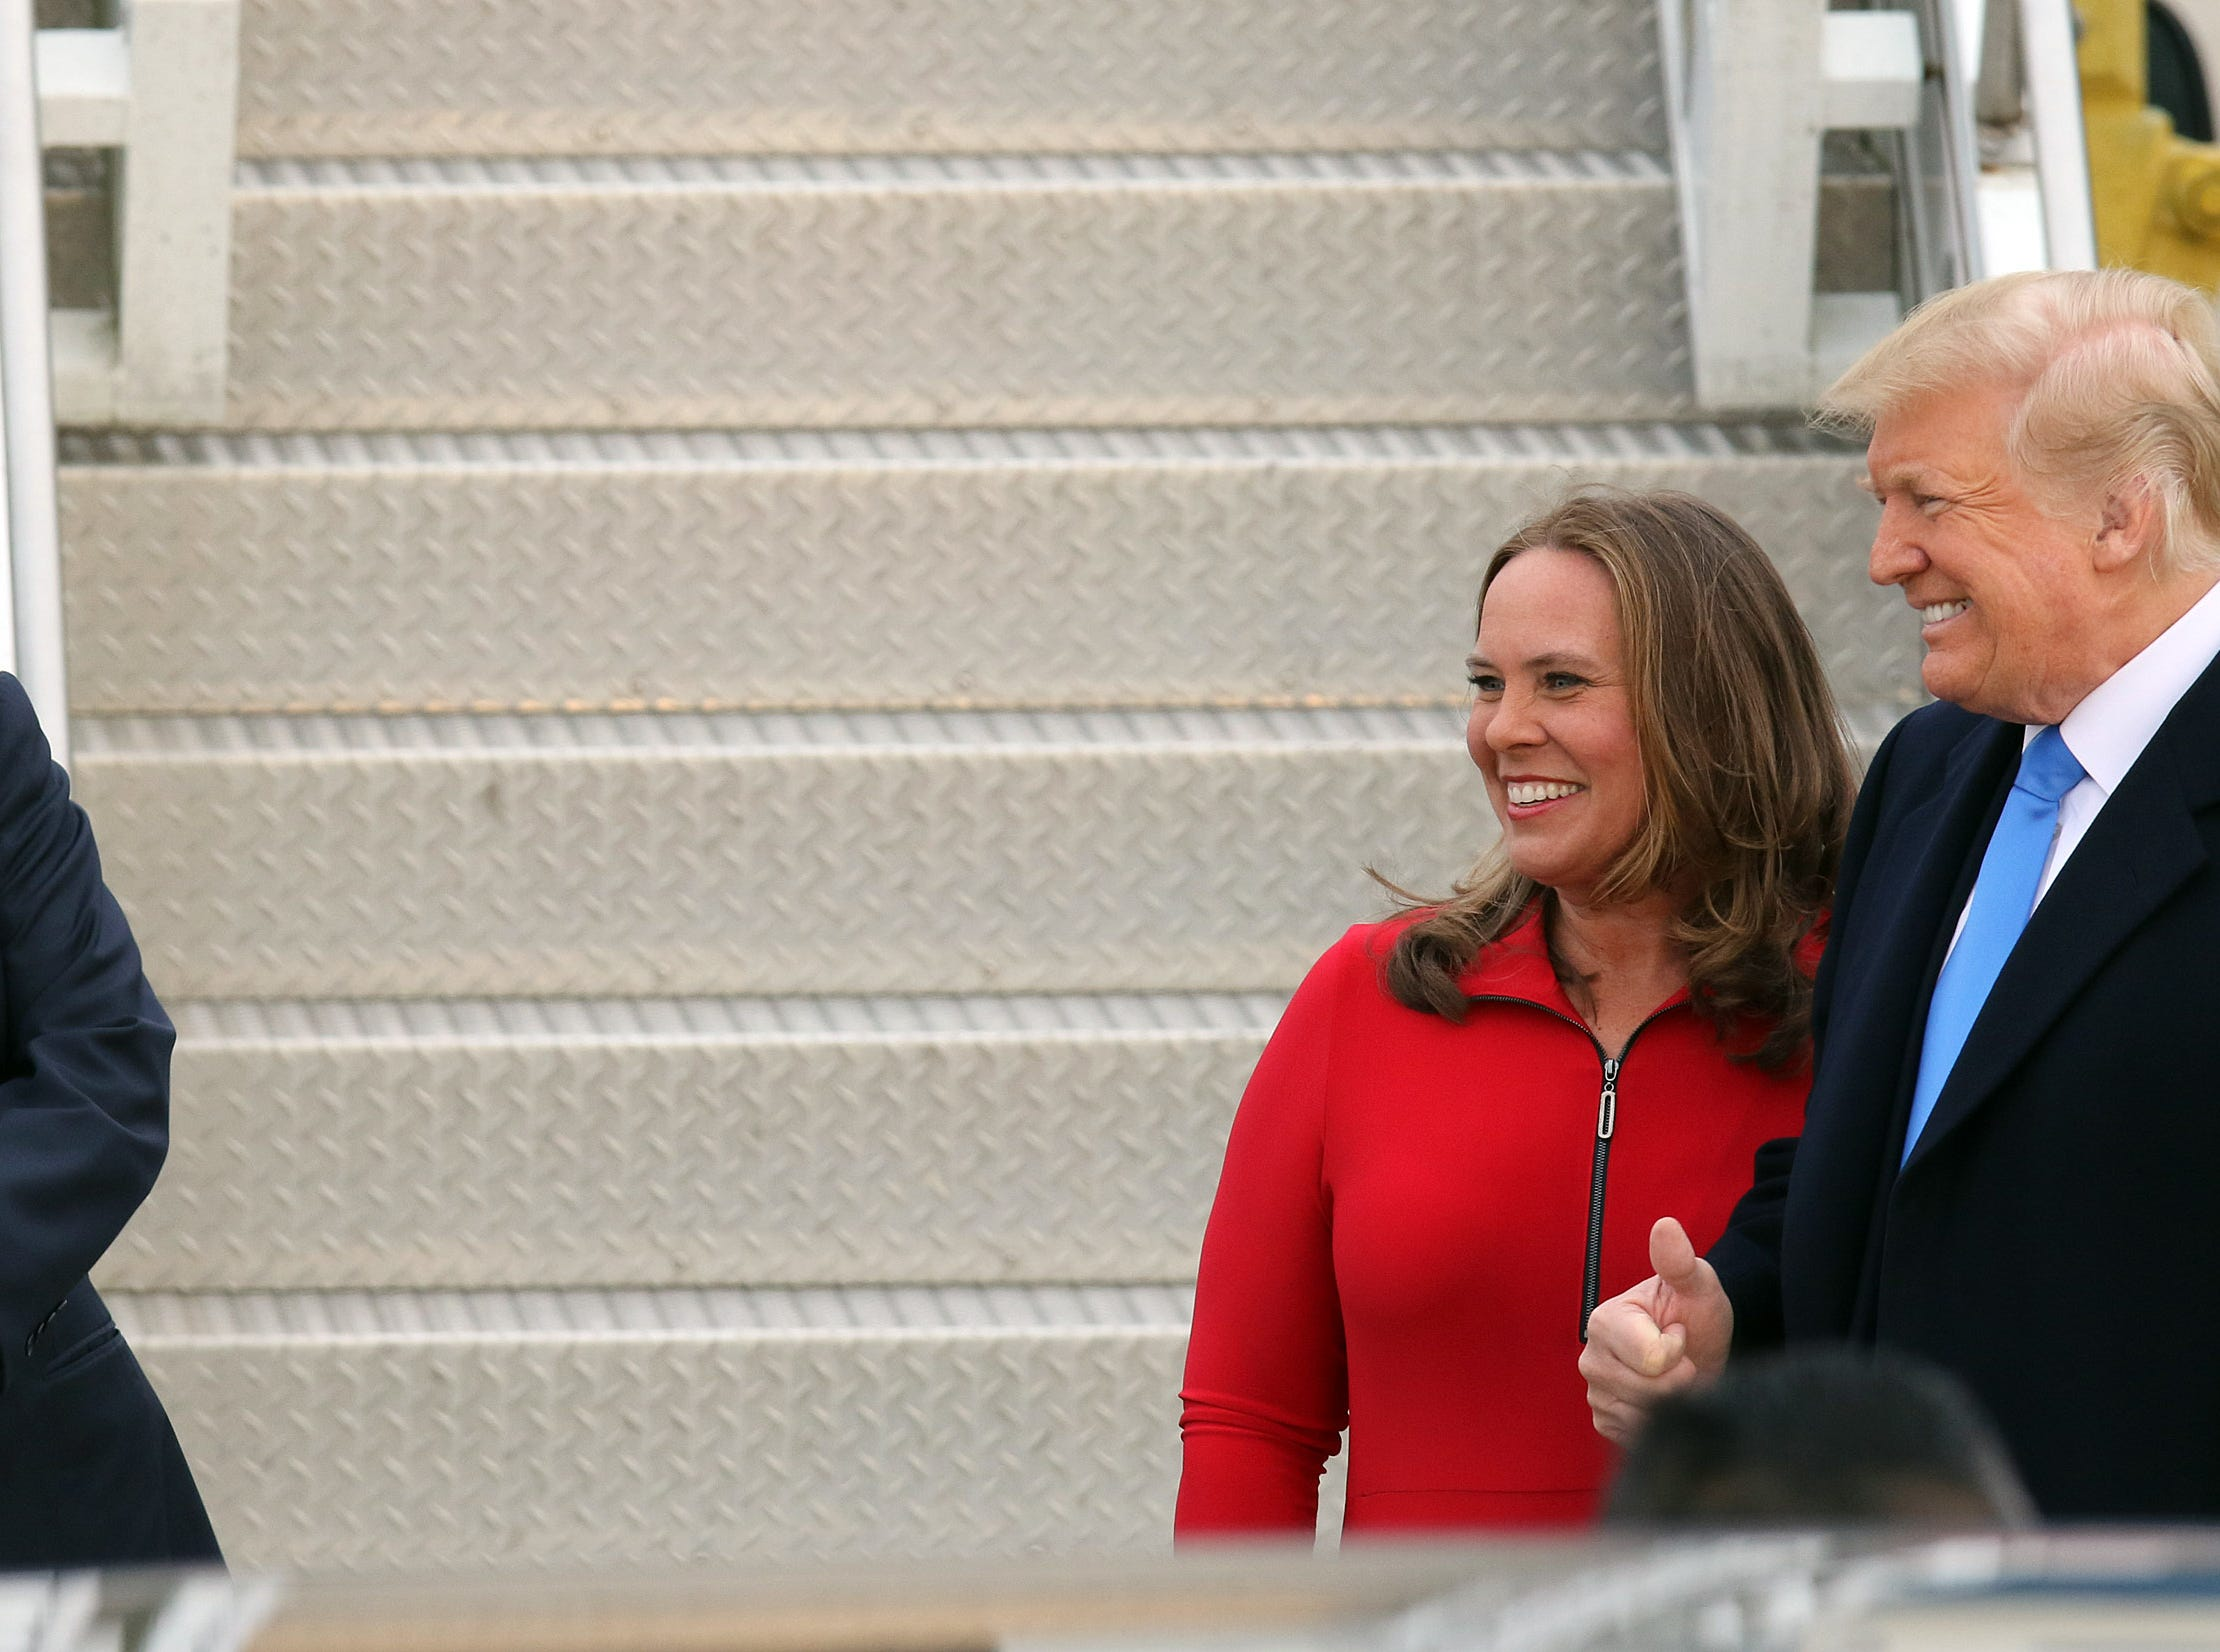 President Trump, right, poses with State Rep. Suzanne Miles (R-7th) as Gov. Matt Bevins takes a photo near Air Force One after arriving at Bluegrass Airport in Lexington, Oct. 13, 2018.